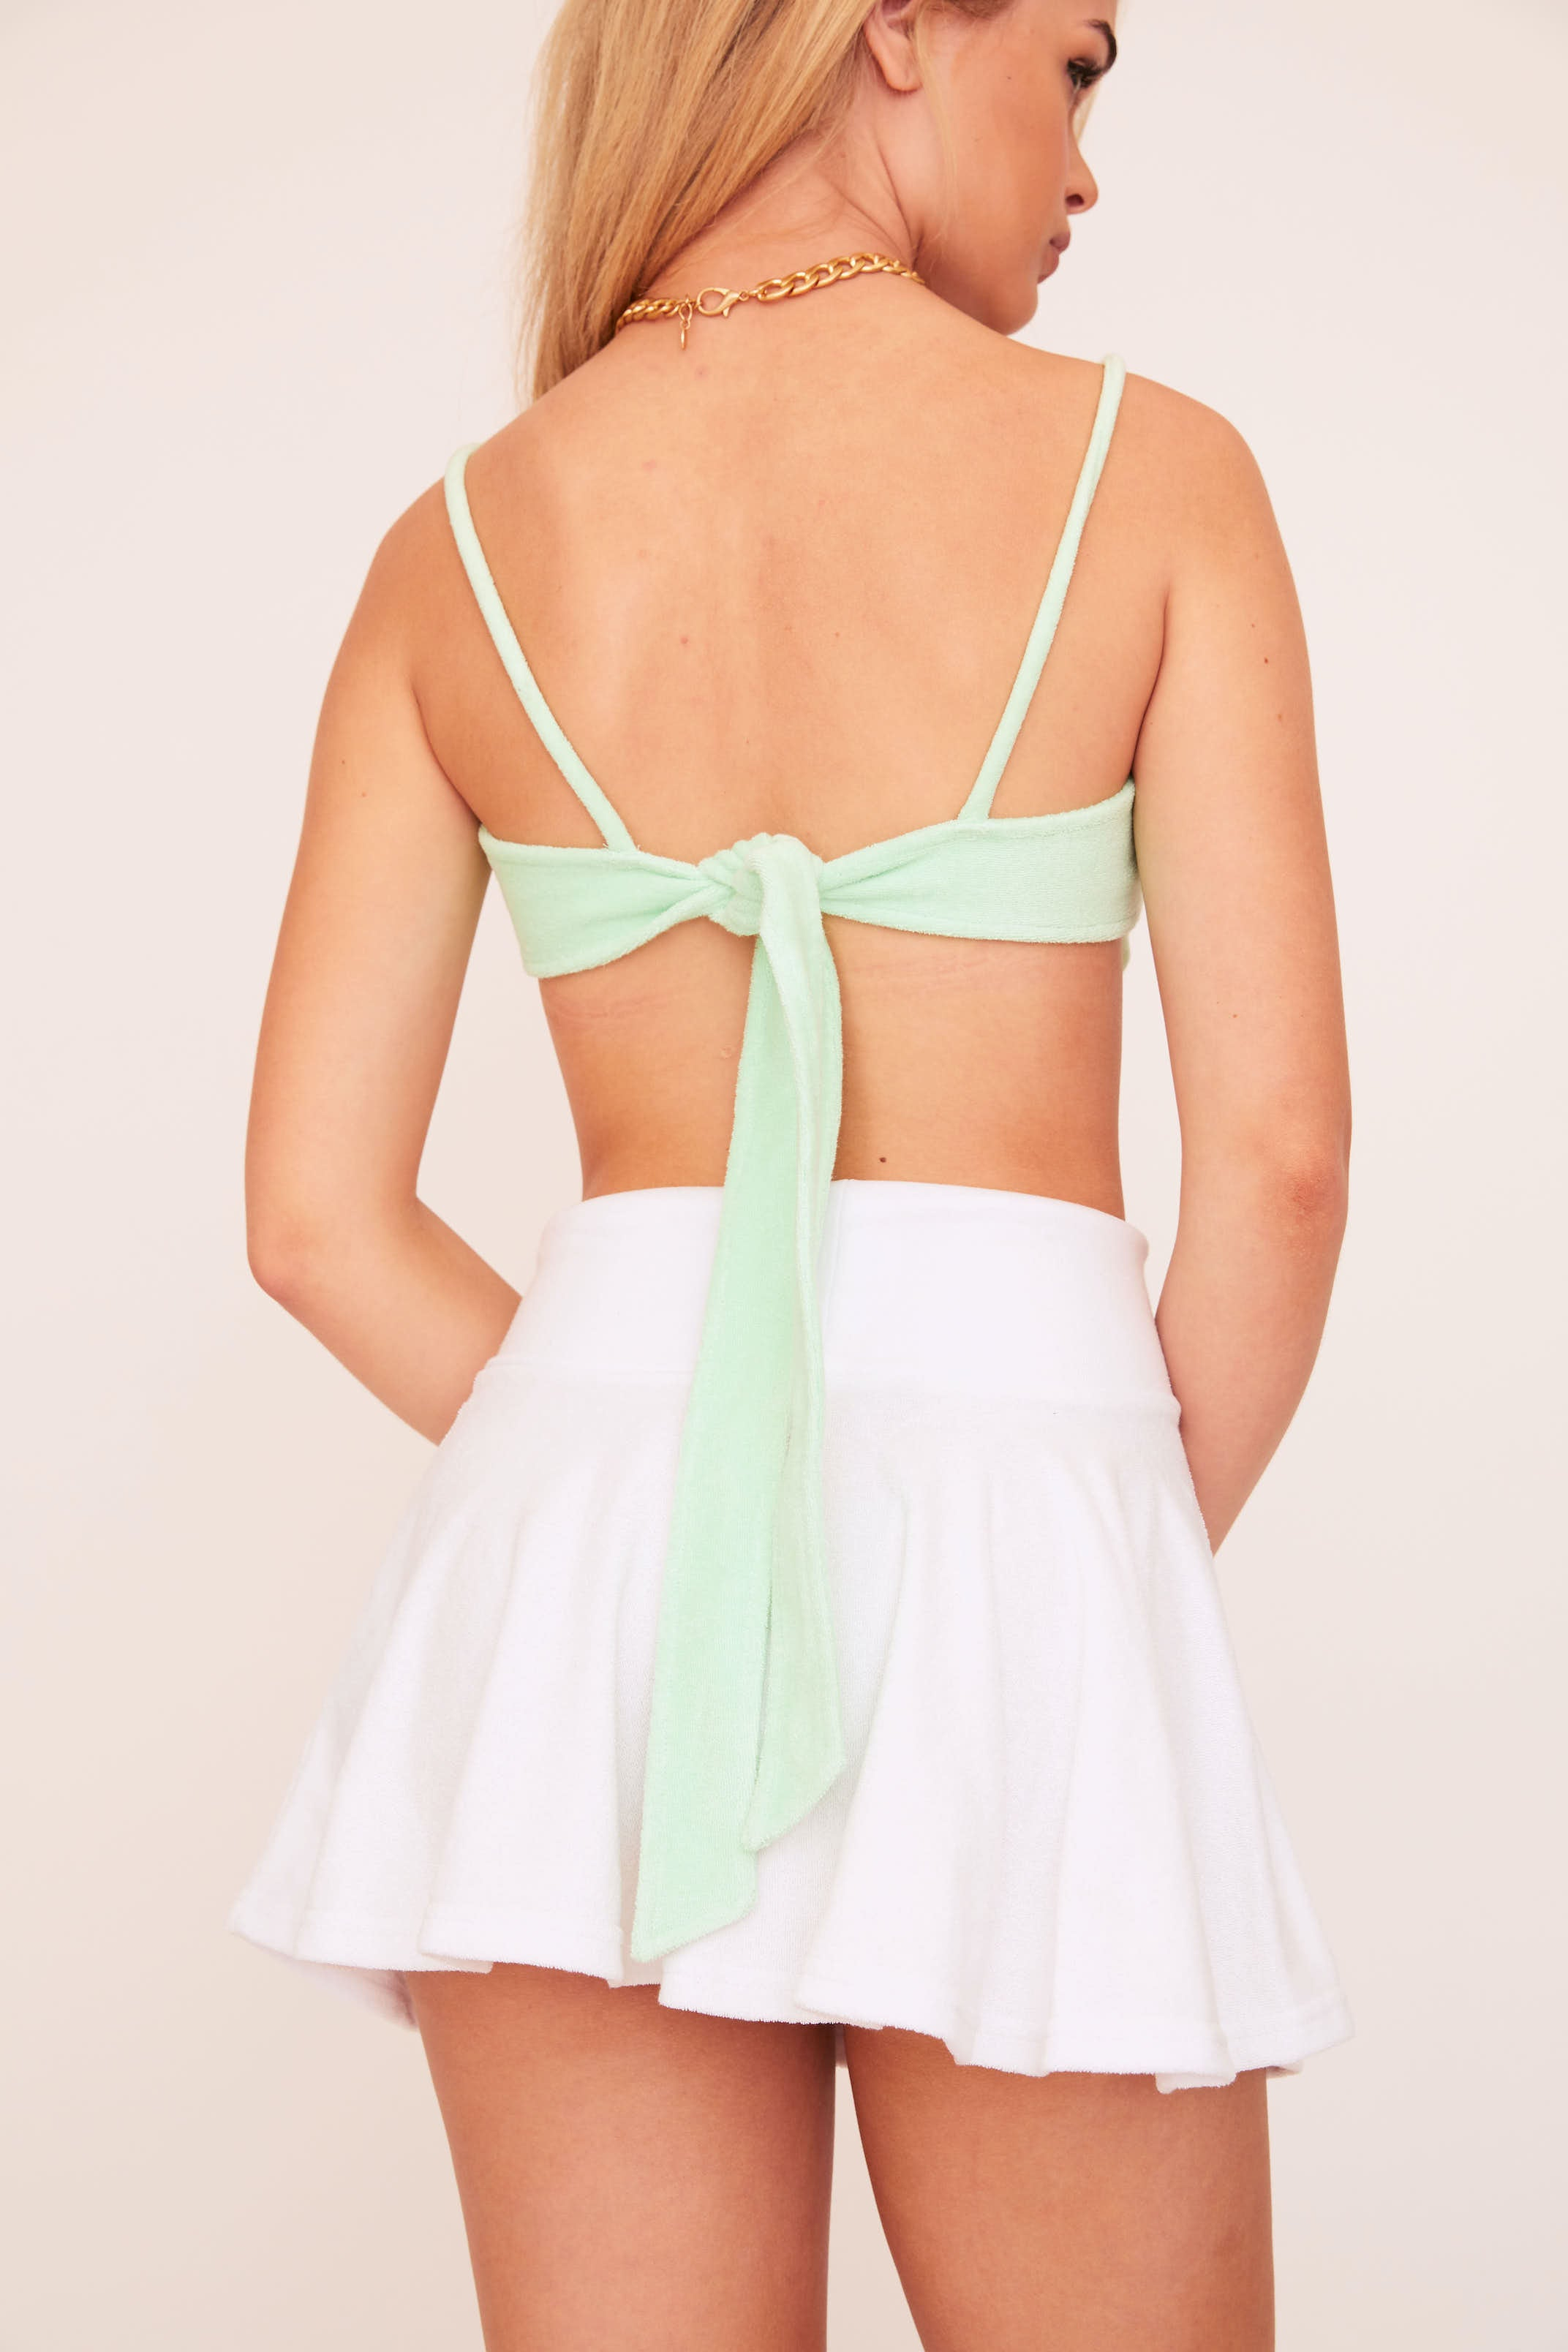 Terry Crop Top - Mint